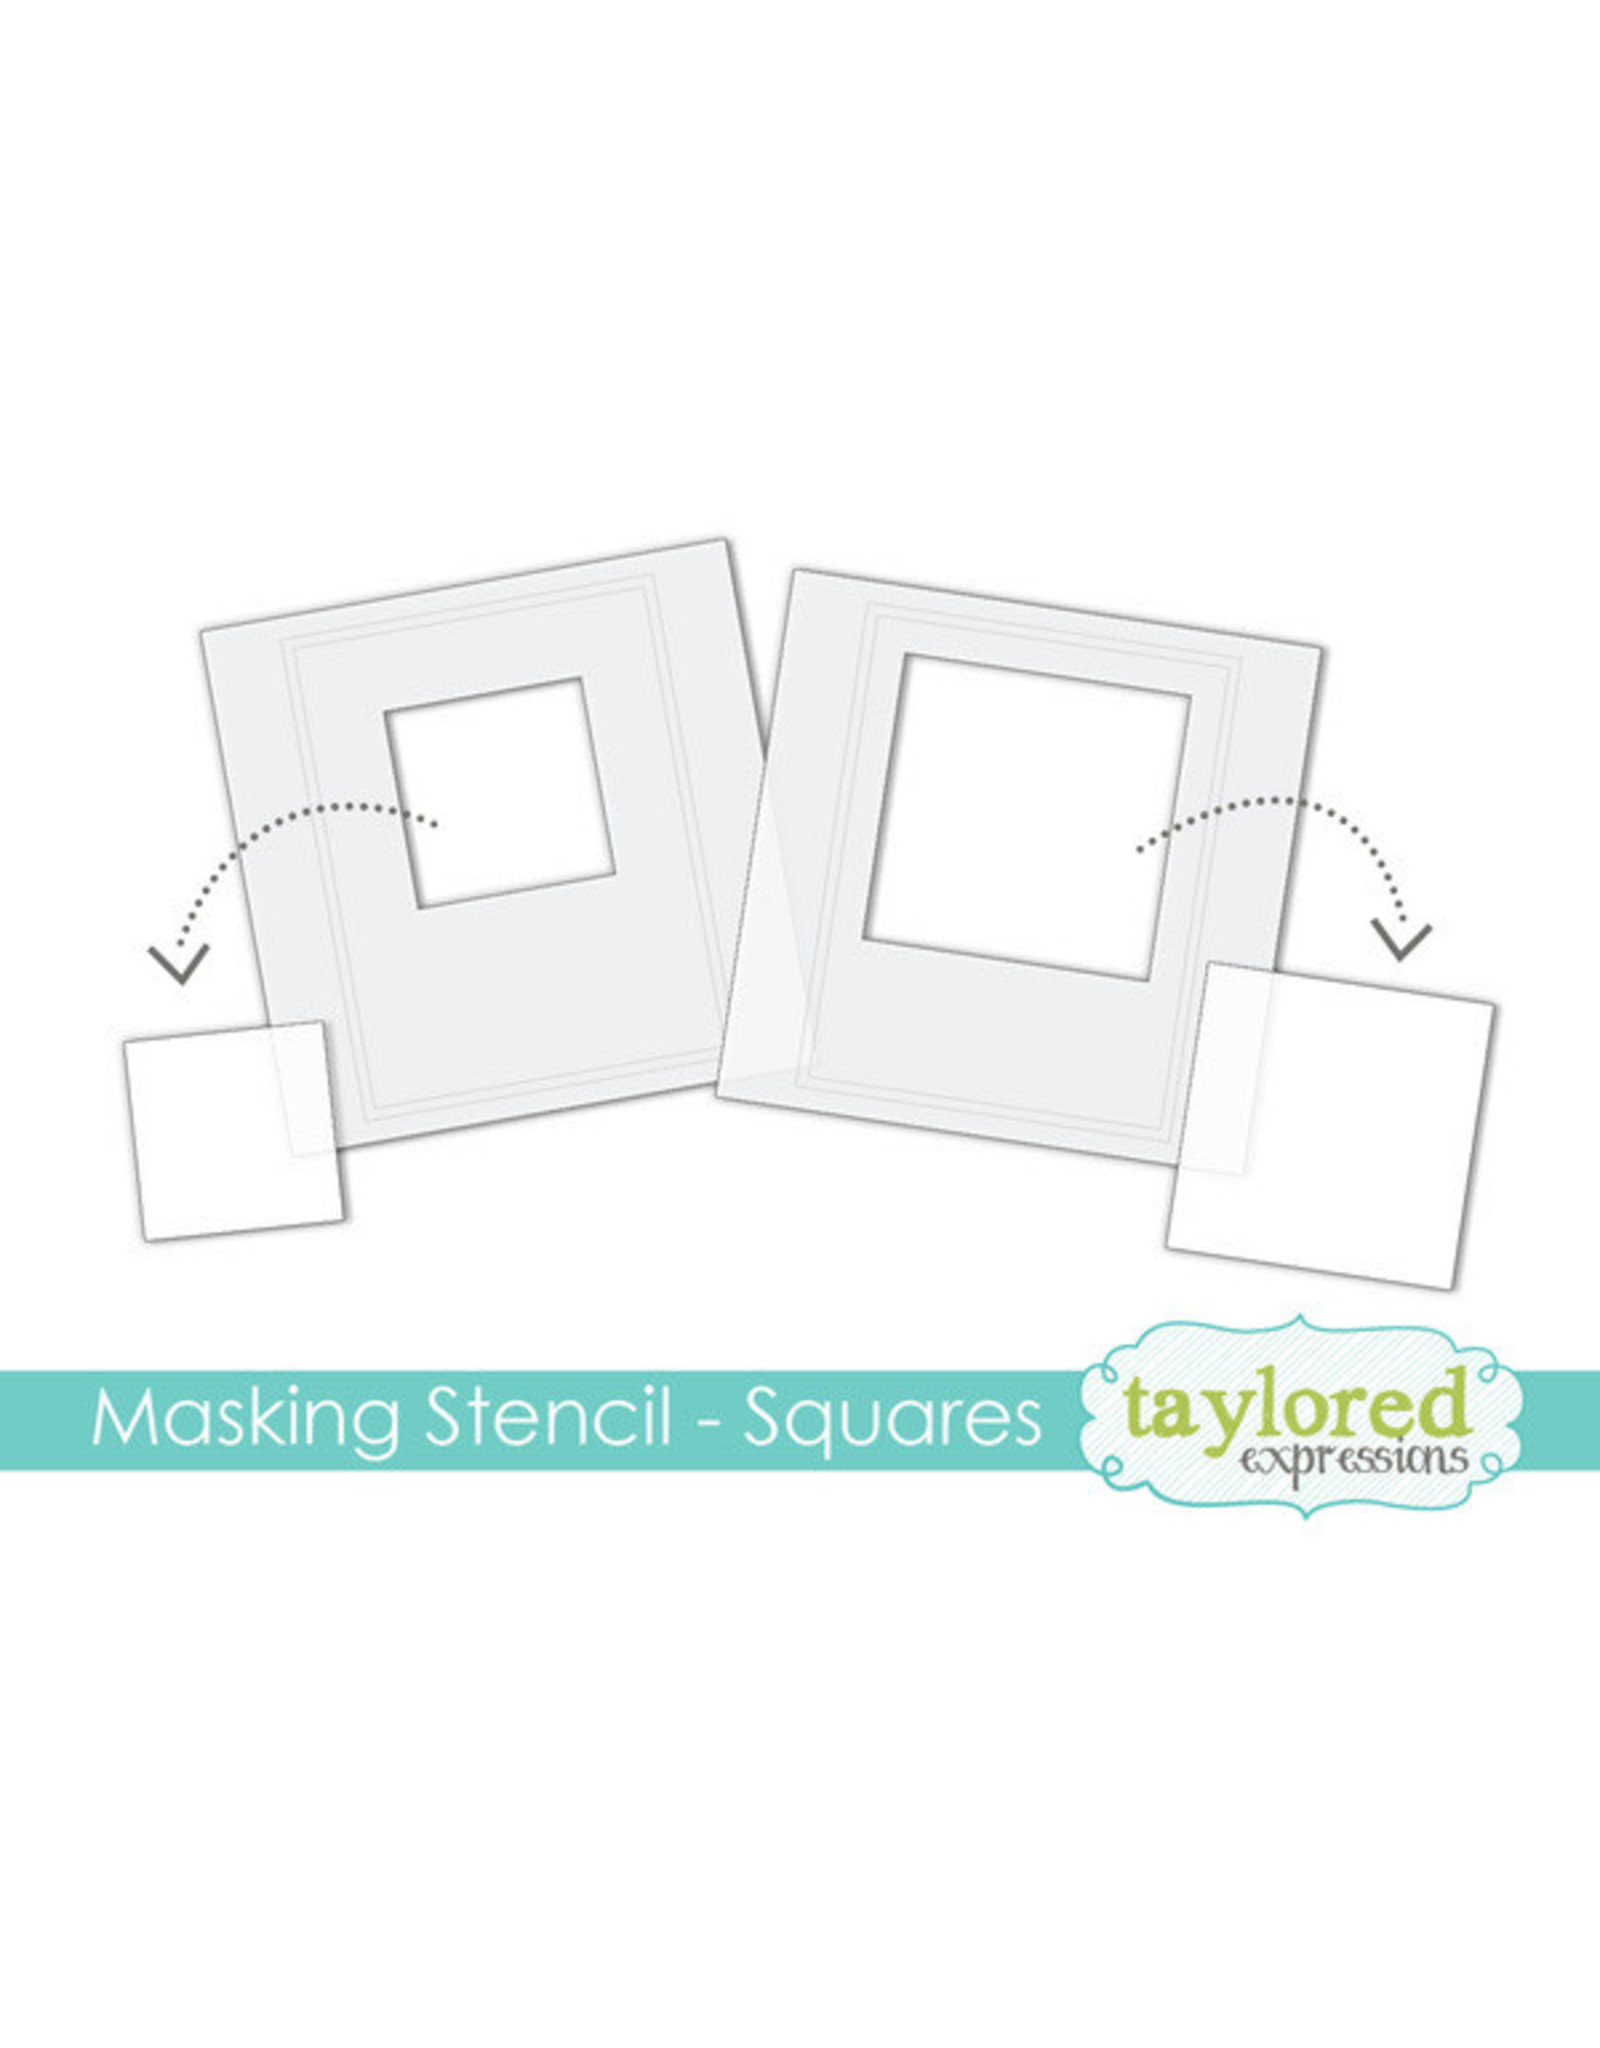 Taylored Expressions Squares - Masking Stencil